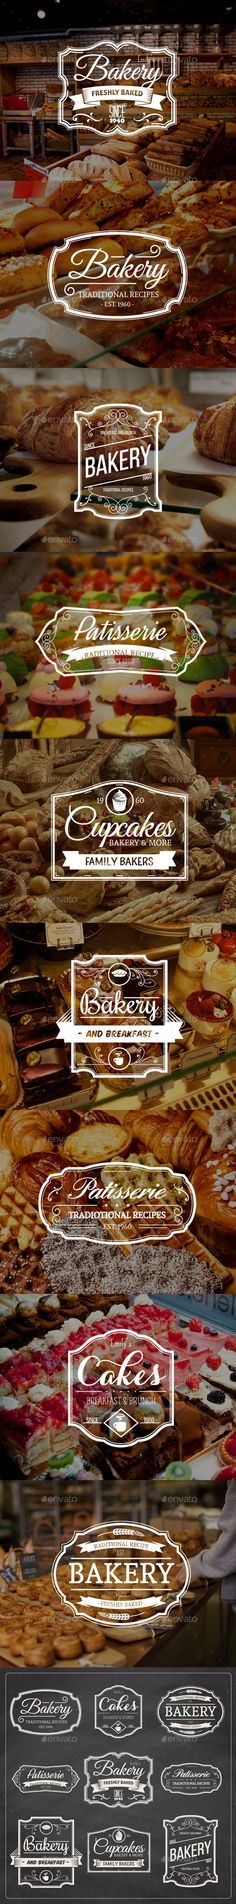 9 Vintage Bakery Badges Template Vector EPS, AI. Download here: http://graphicriver.net/item/9-vintage-bakery-badges/15810081?ref=nexion